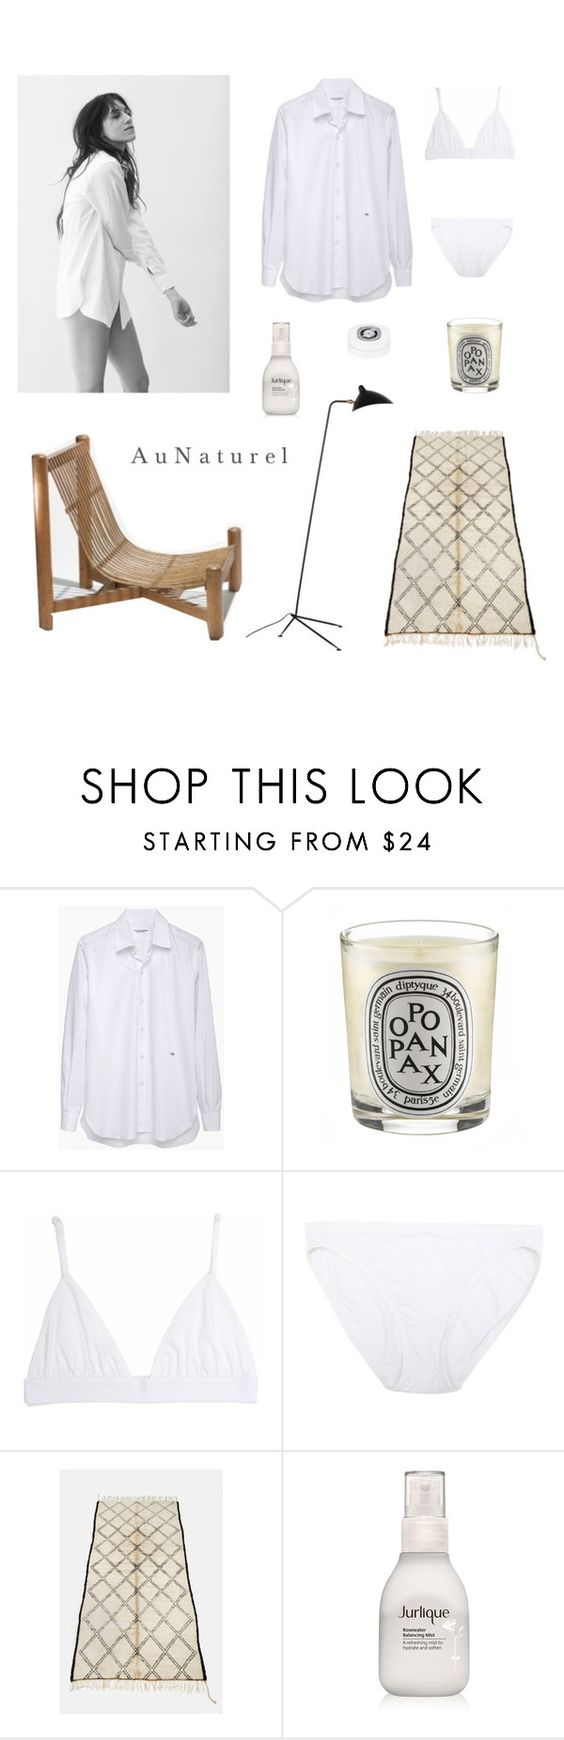 """""""/"""" by darkwood ❤ liked on Polyvore featuring interior, interiors, interior design, home, home decor, interior decorating, Current/Elliott, Land of Women, Jurlique and Diptyque"""